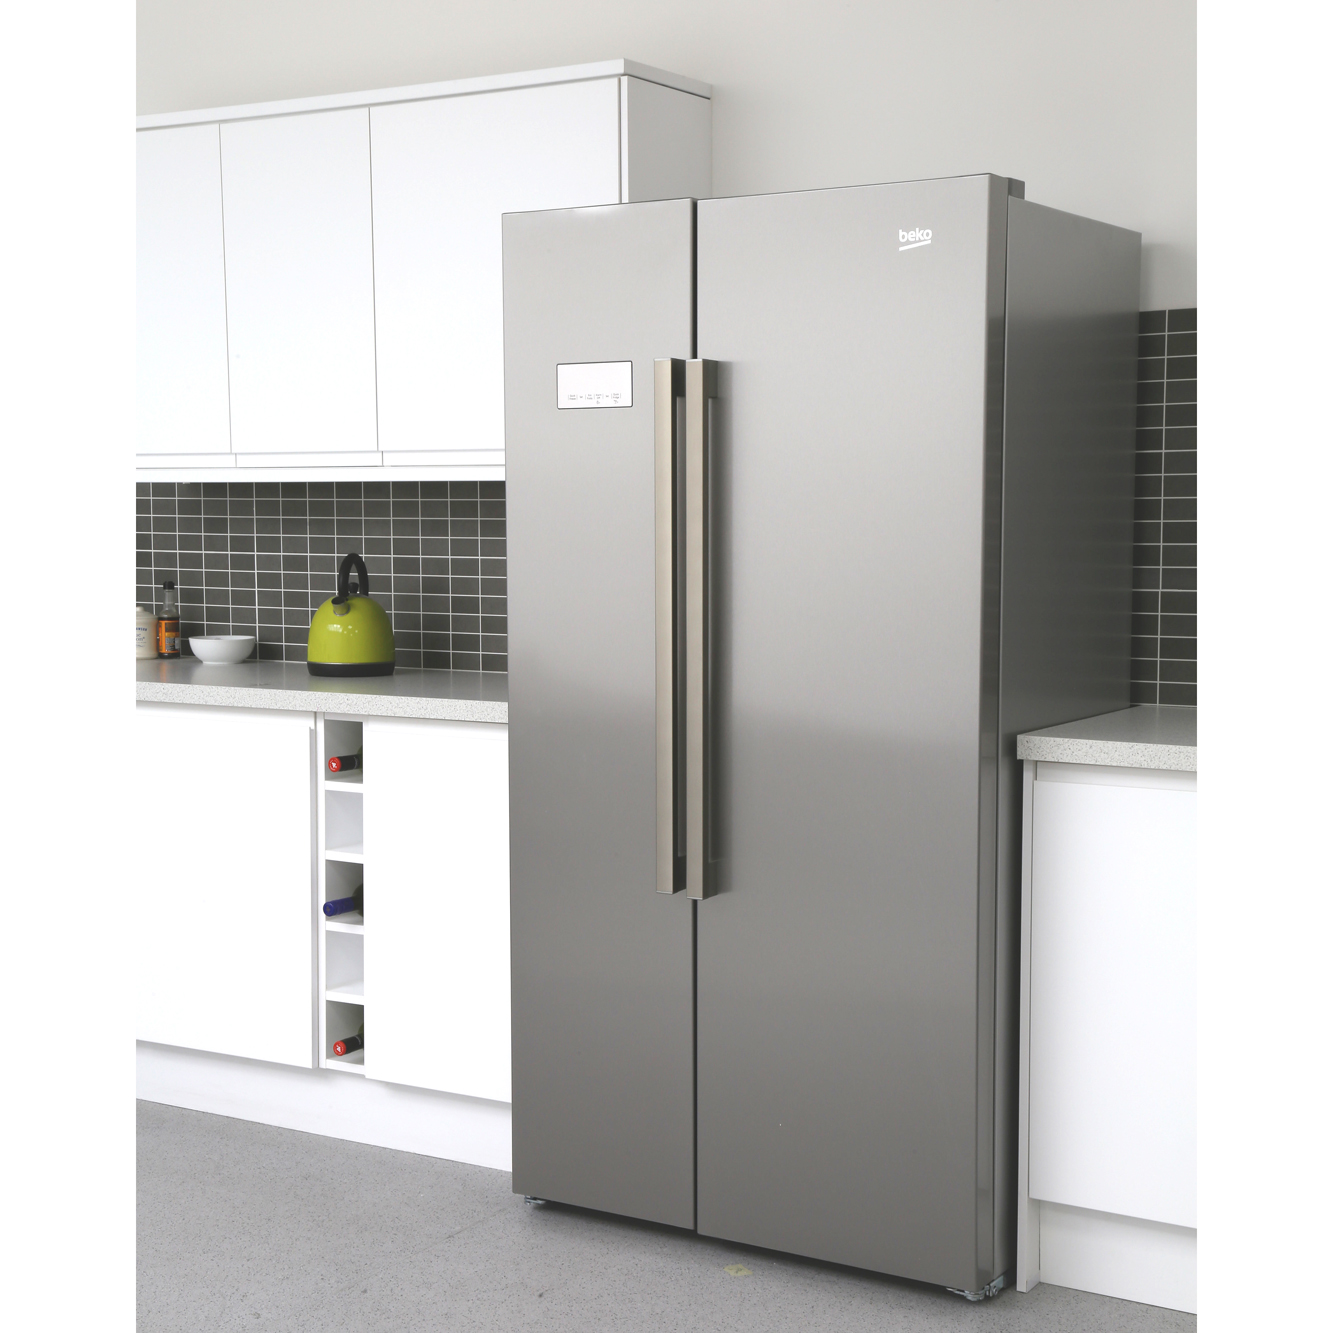 beko asl141x american fridge freezer stainless steel. Black Bedroom Furniture Sets. Home Design Ideas